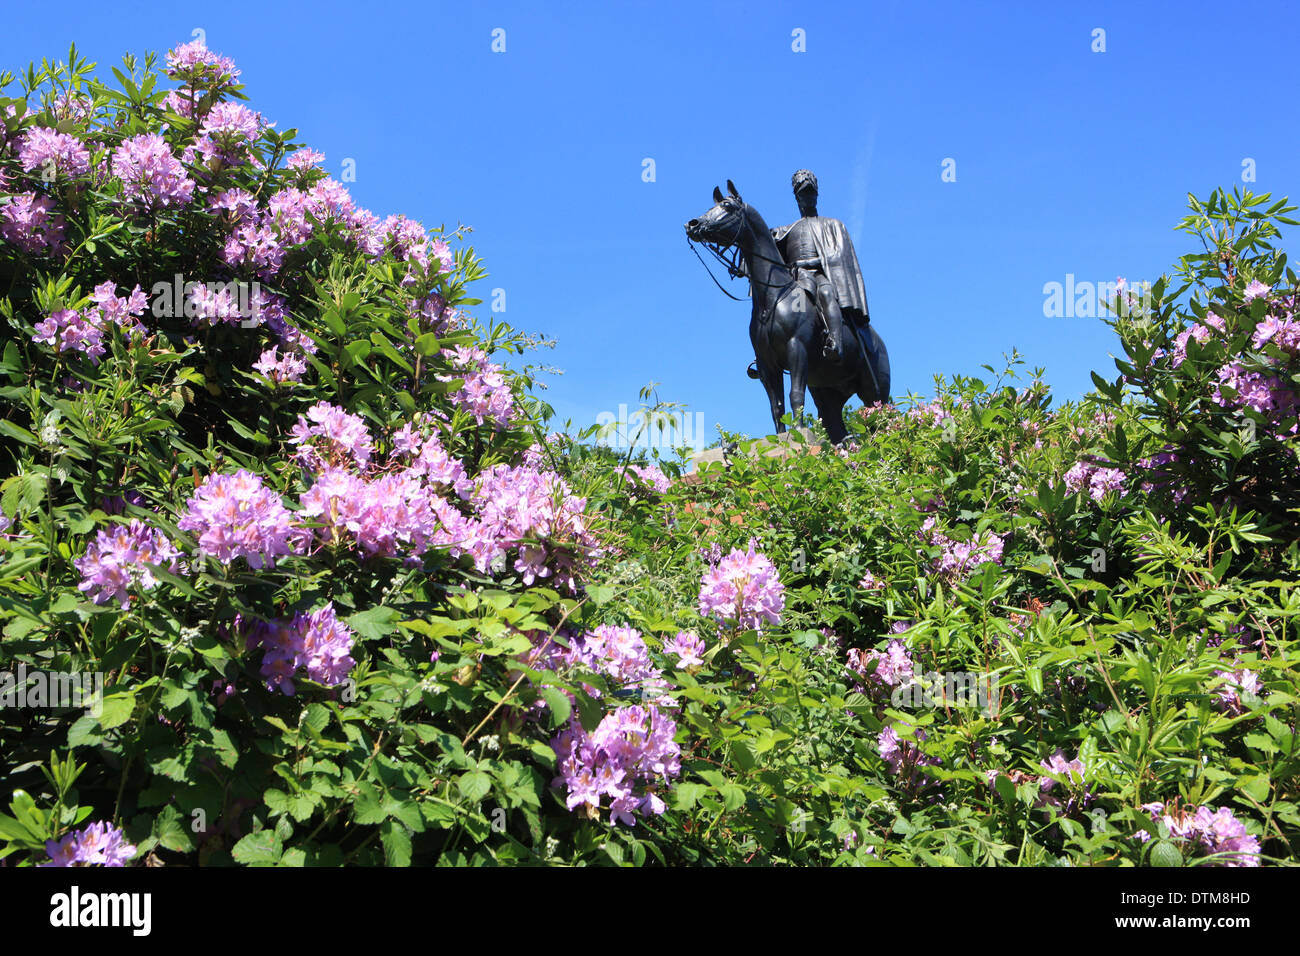 Statue of the Duke of Wellington Arthur Wellesley on his horse Copenhagen on Round Hill Aldershot, with its Rhododendron - Stock Image